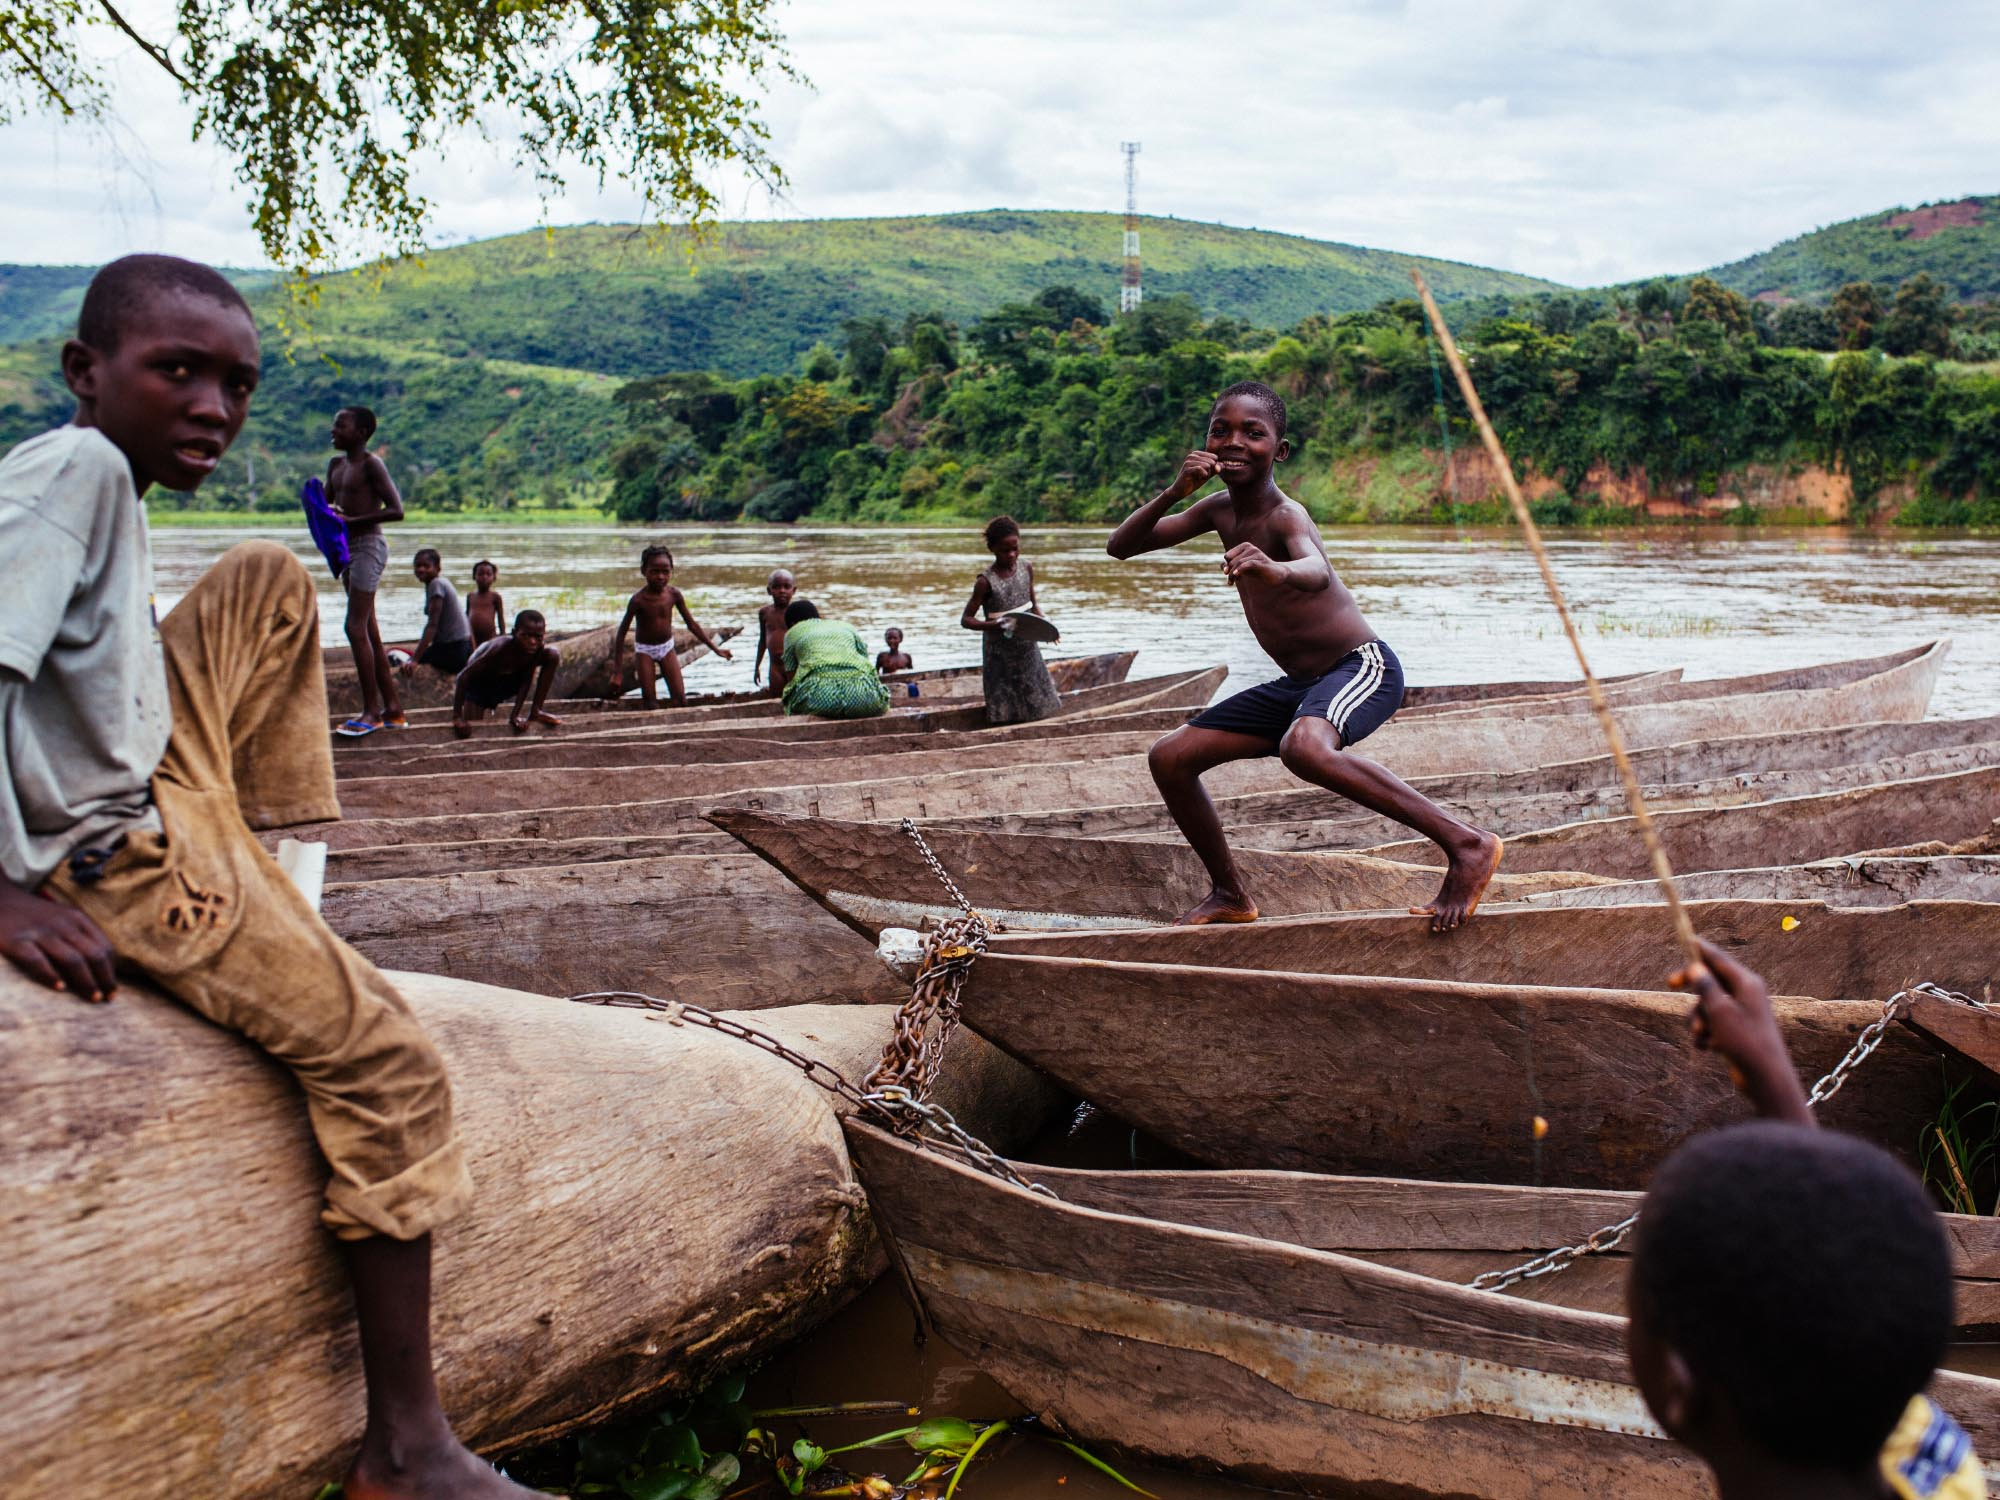 Travel photography: Everyday life in Congo.